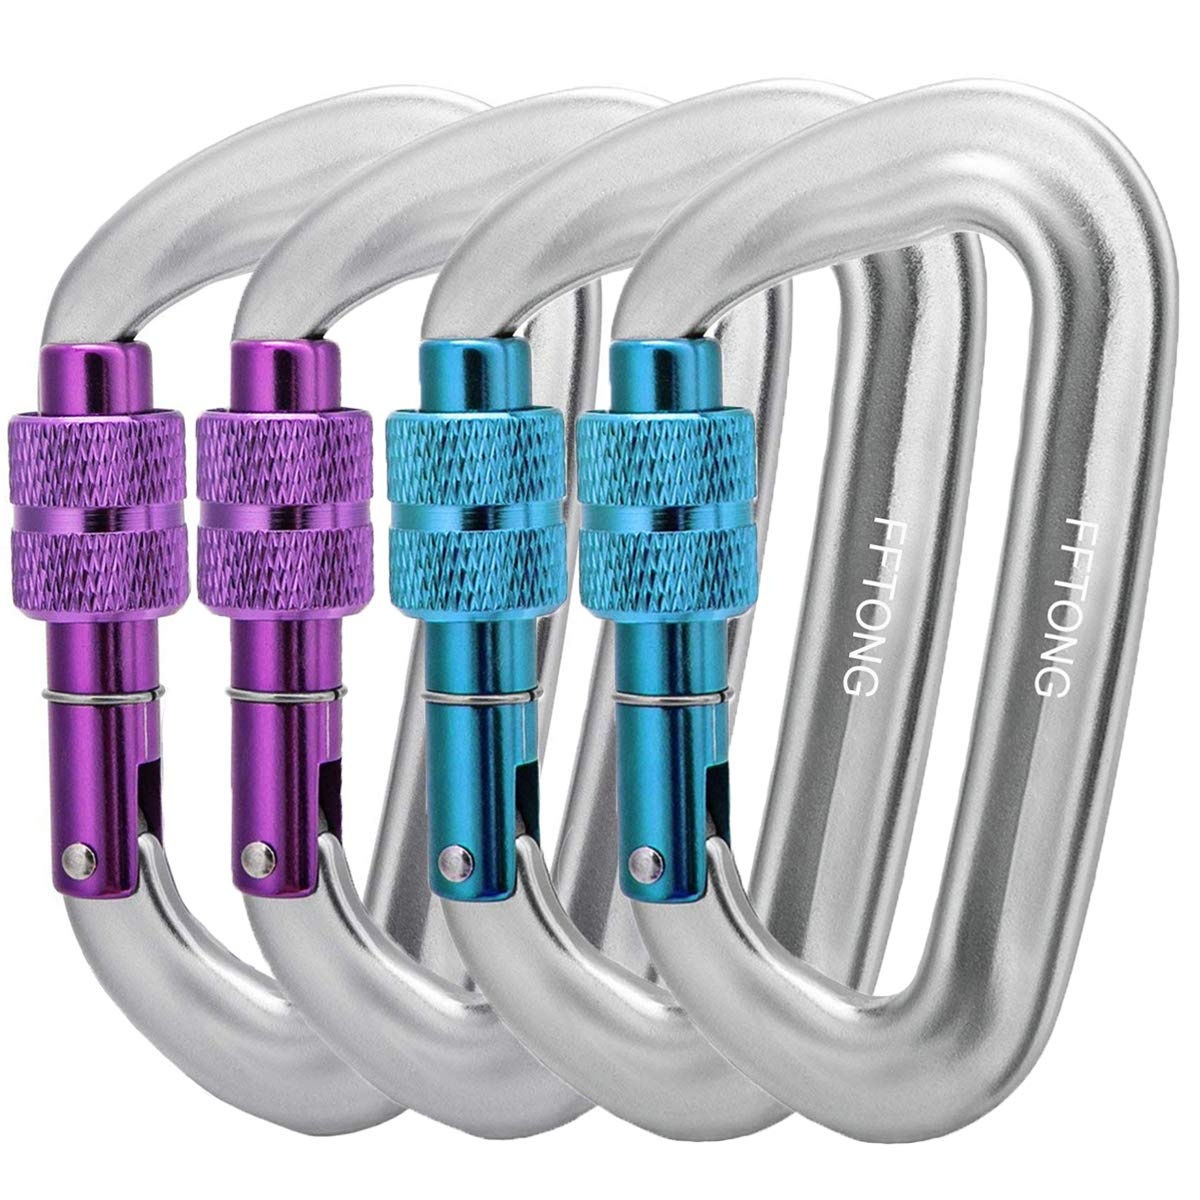 Keychain Dog Leash /& Harness etc. Camping Hiking Backpacking FTON Locking Carabiners 12KN//2697lbs Aerospace Aluminum Alloy 7075 D Ring Screw Locking Carabiner Clips for Hammock